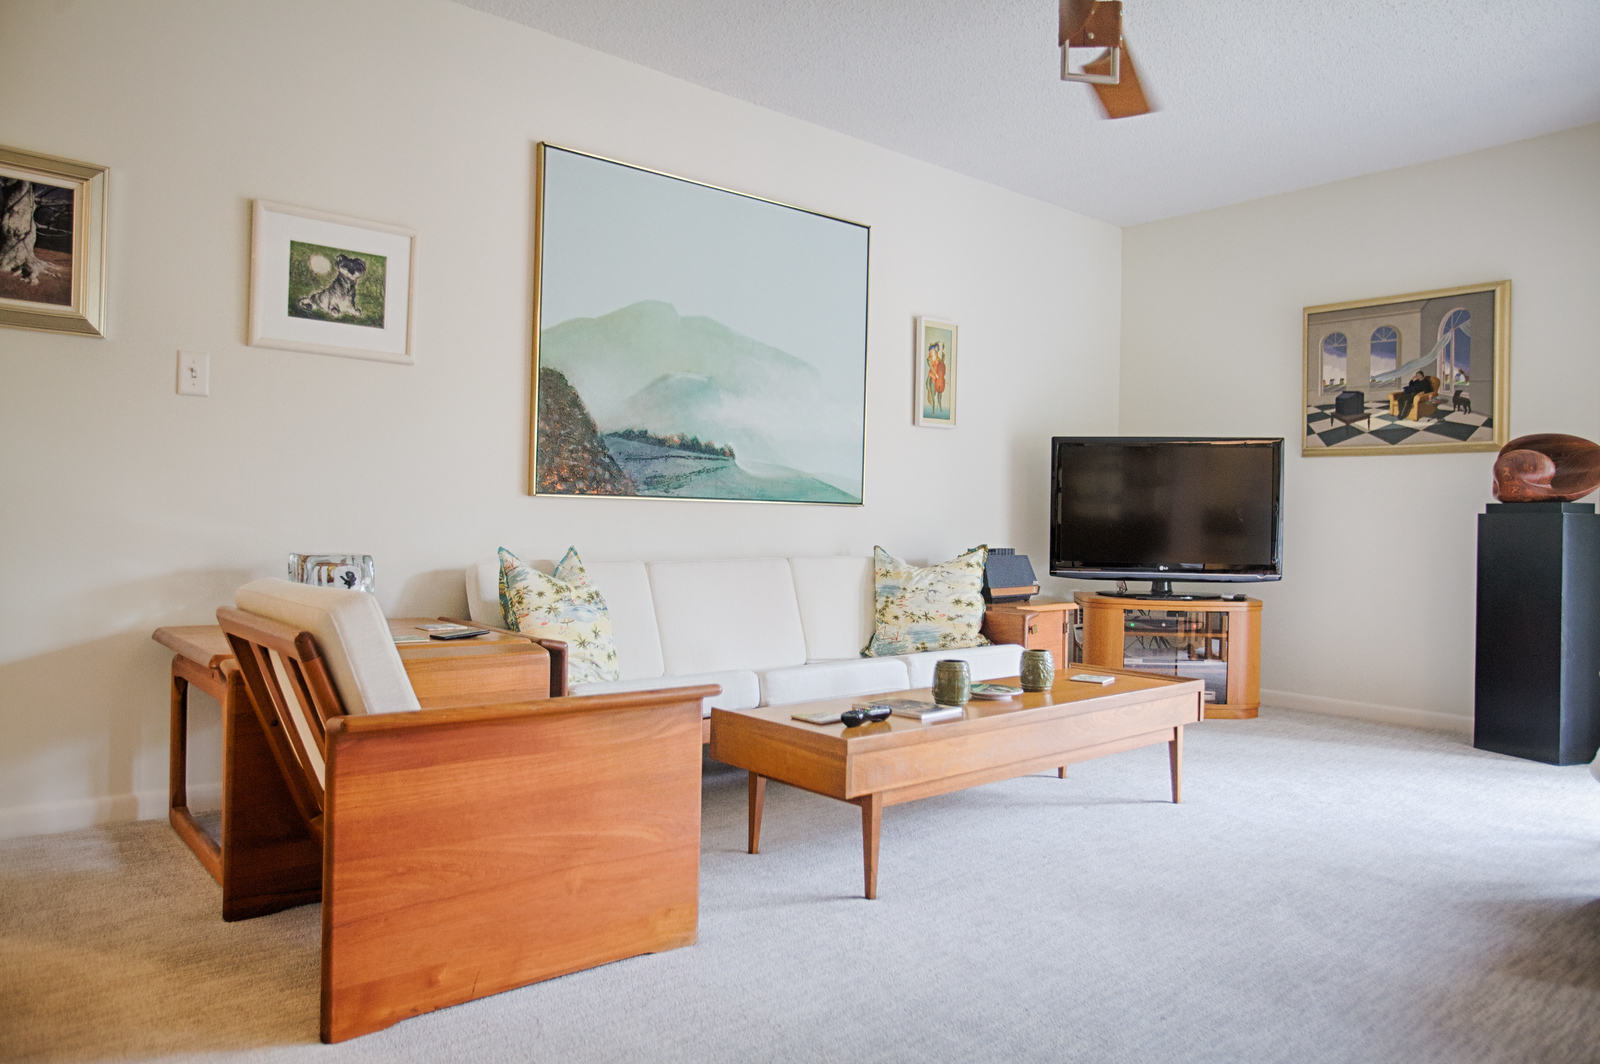 Mid Century Danish Modern Living Room a 1990s florida tropical beach condo gets a mid-century modern